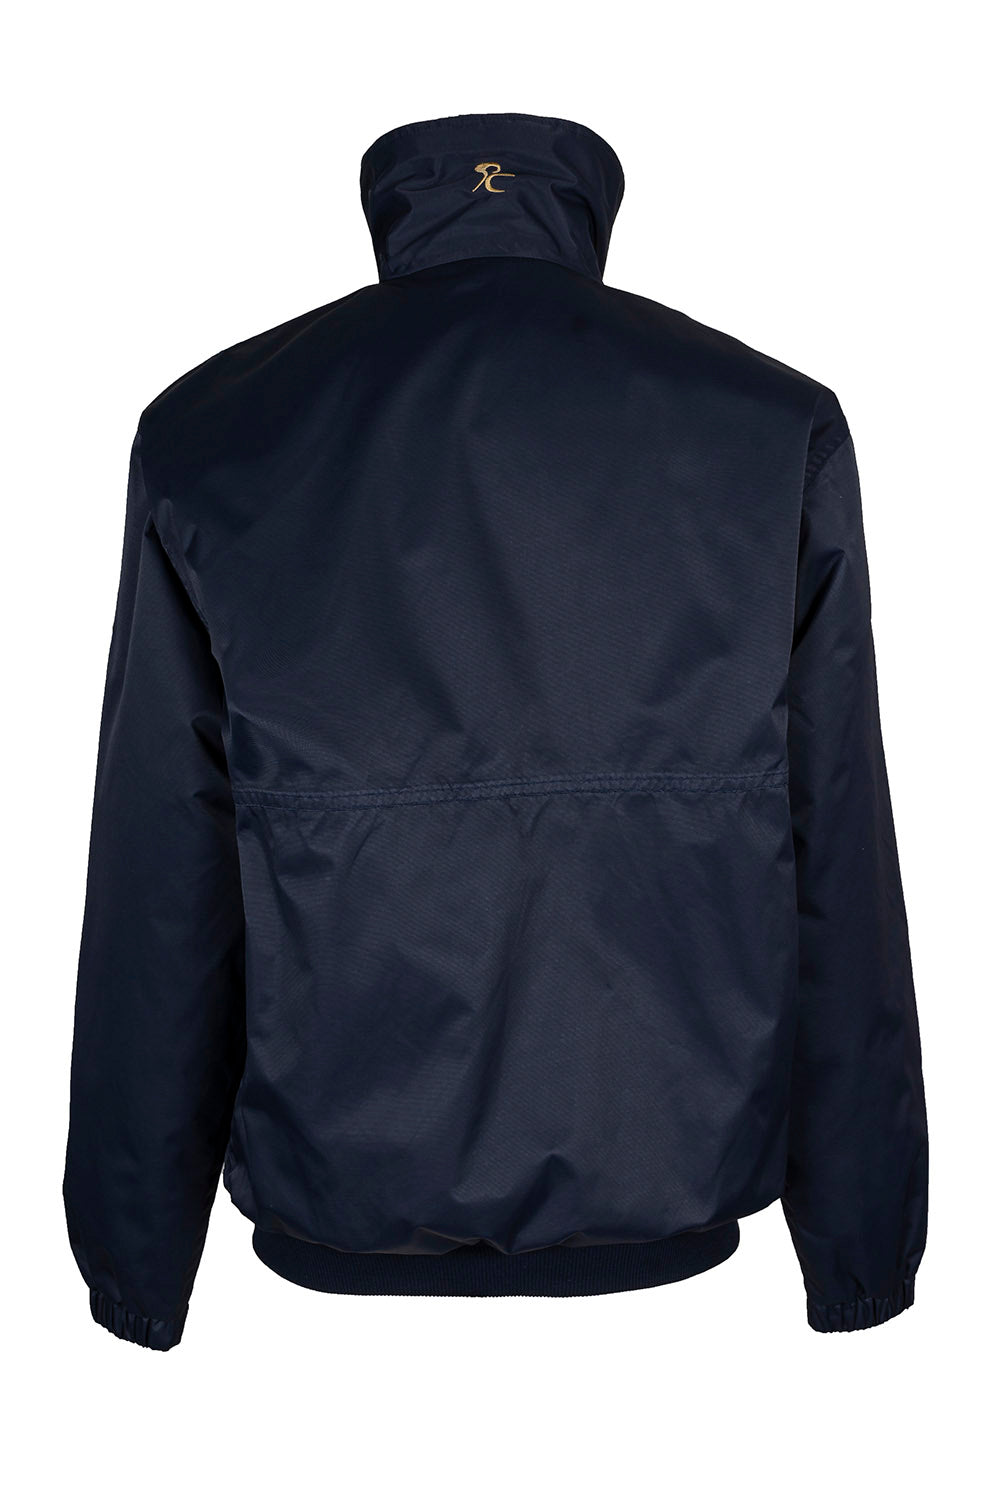 The PC Elect Blouson Jacket - Navy - Childrens